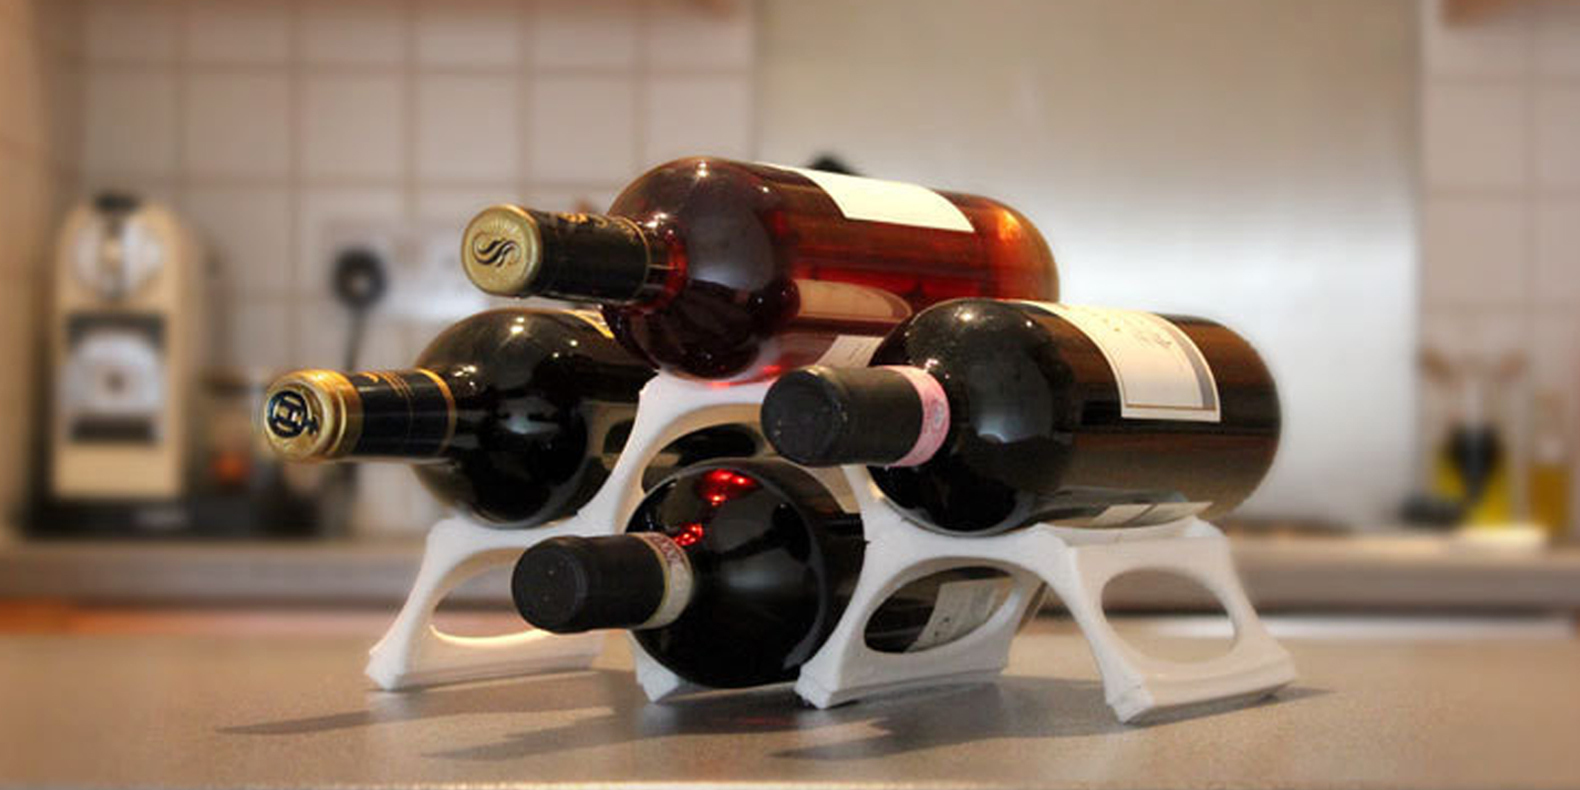 Find here a selection of the best wine related 3D models to make with a 3D printer